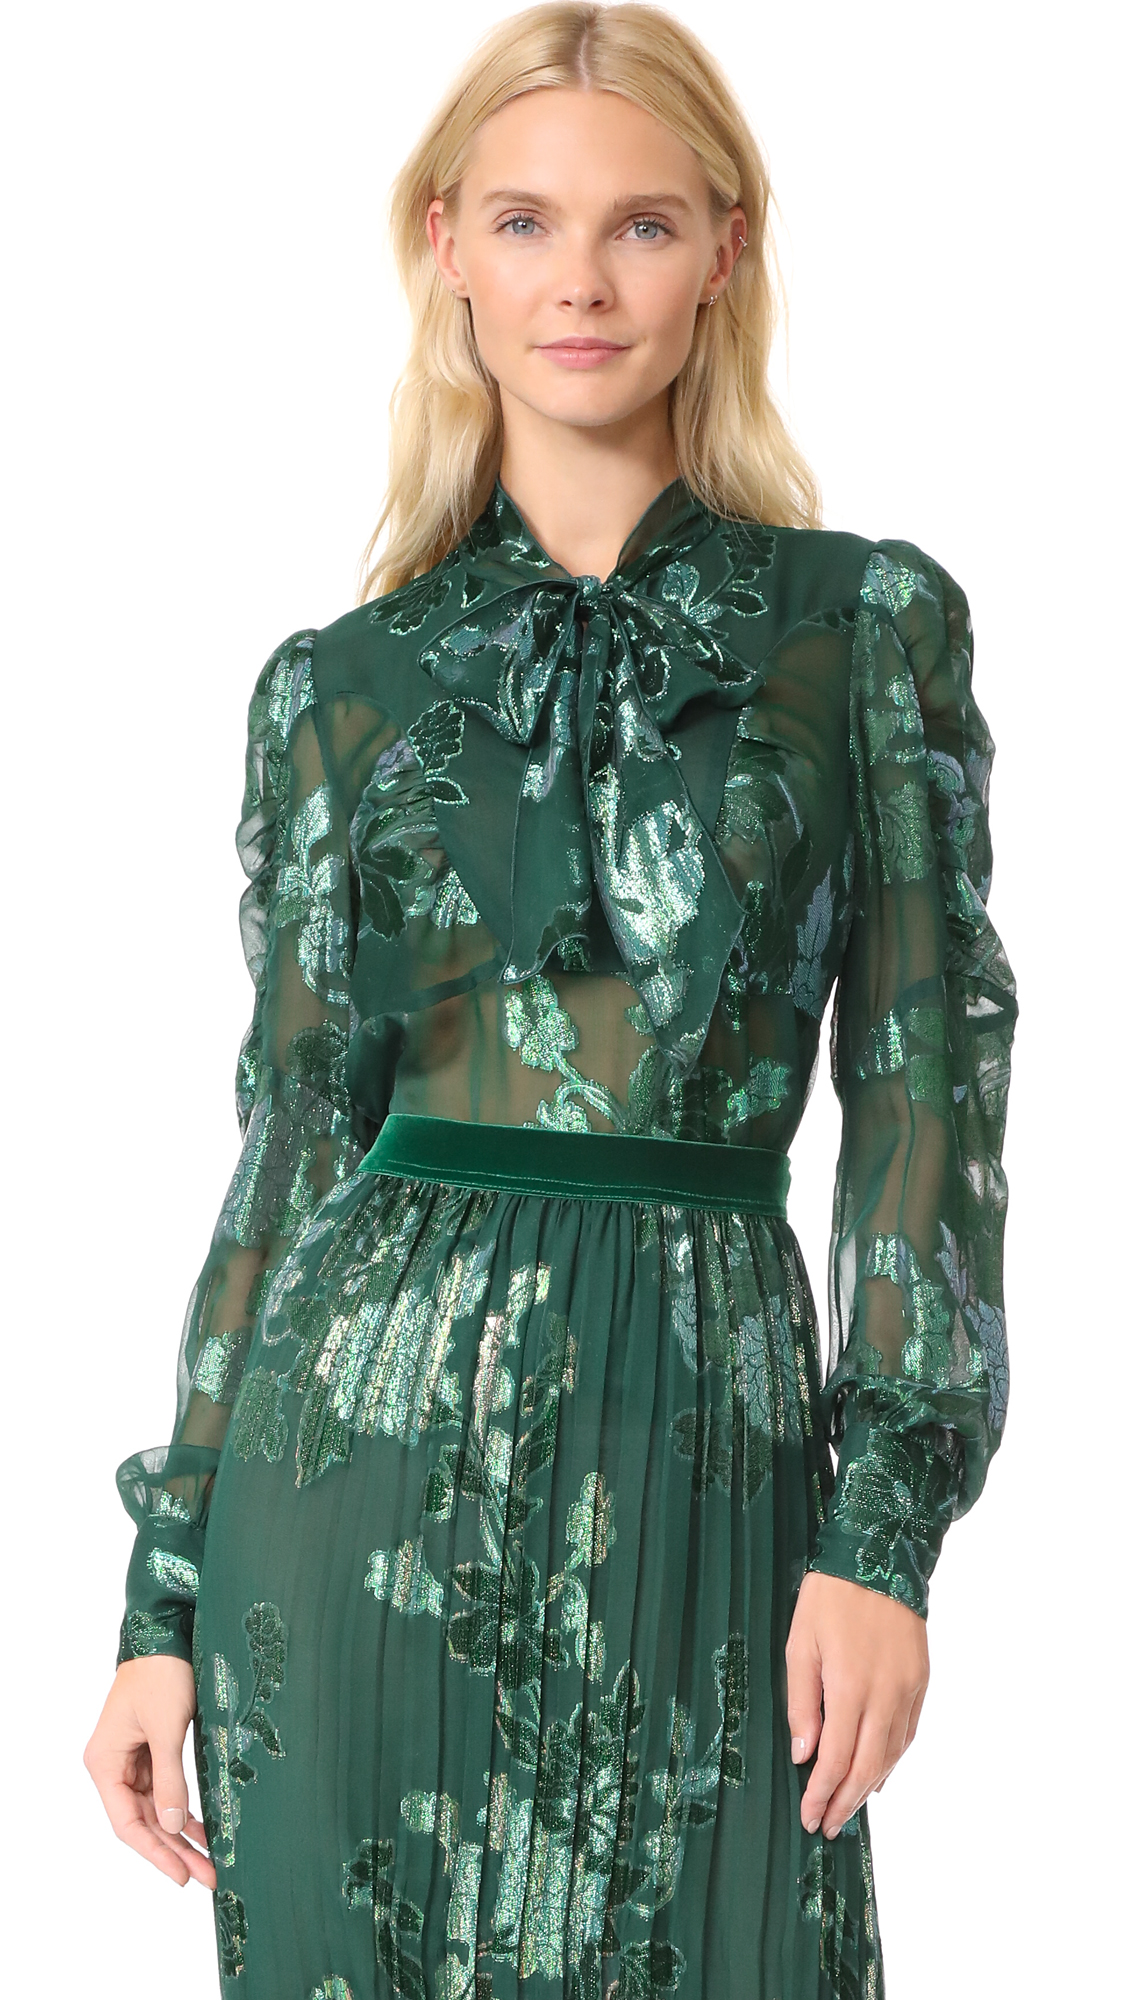 Anna Sui Iridescent Moonlight Garden Top - Forest